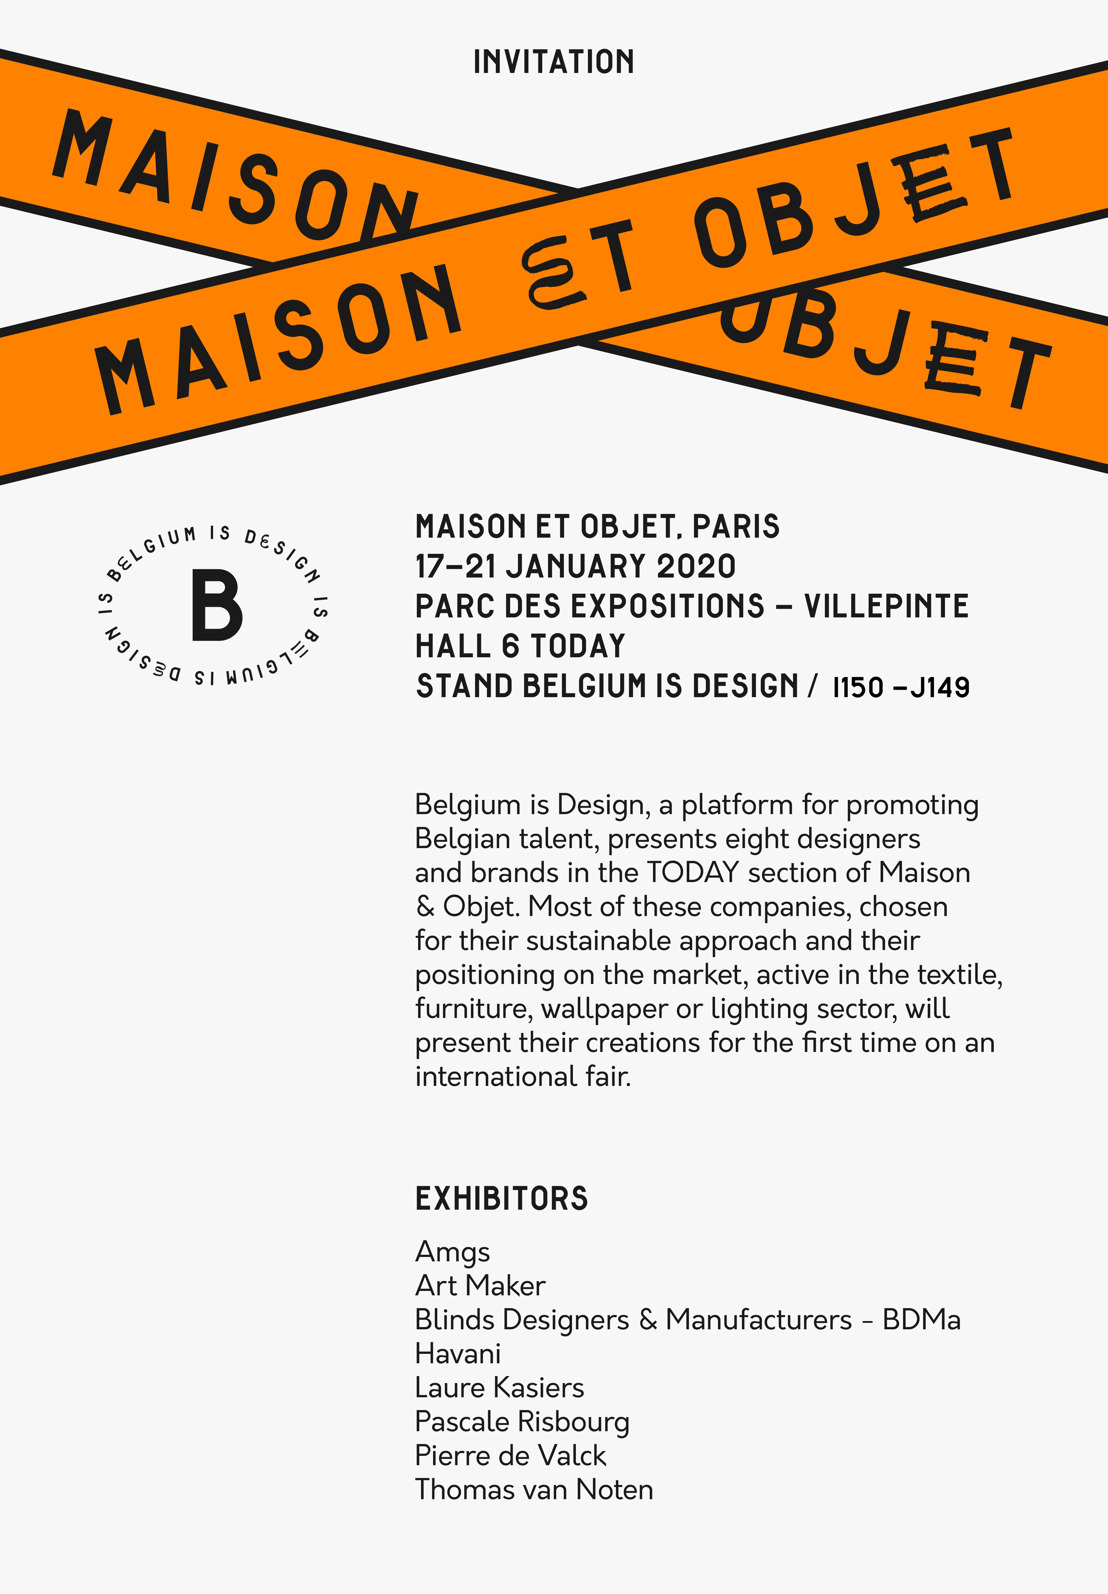 INVITATION: Belgium is Design - Maison&Objet Paris